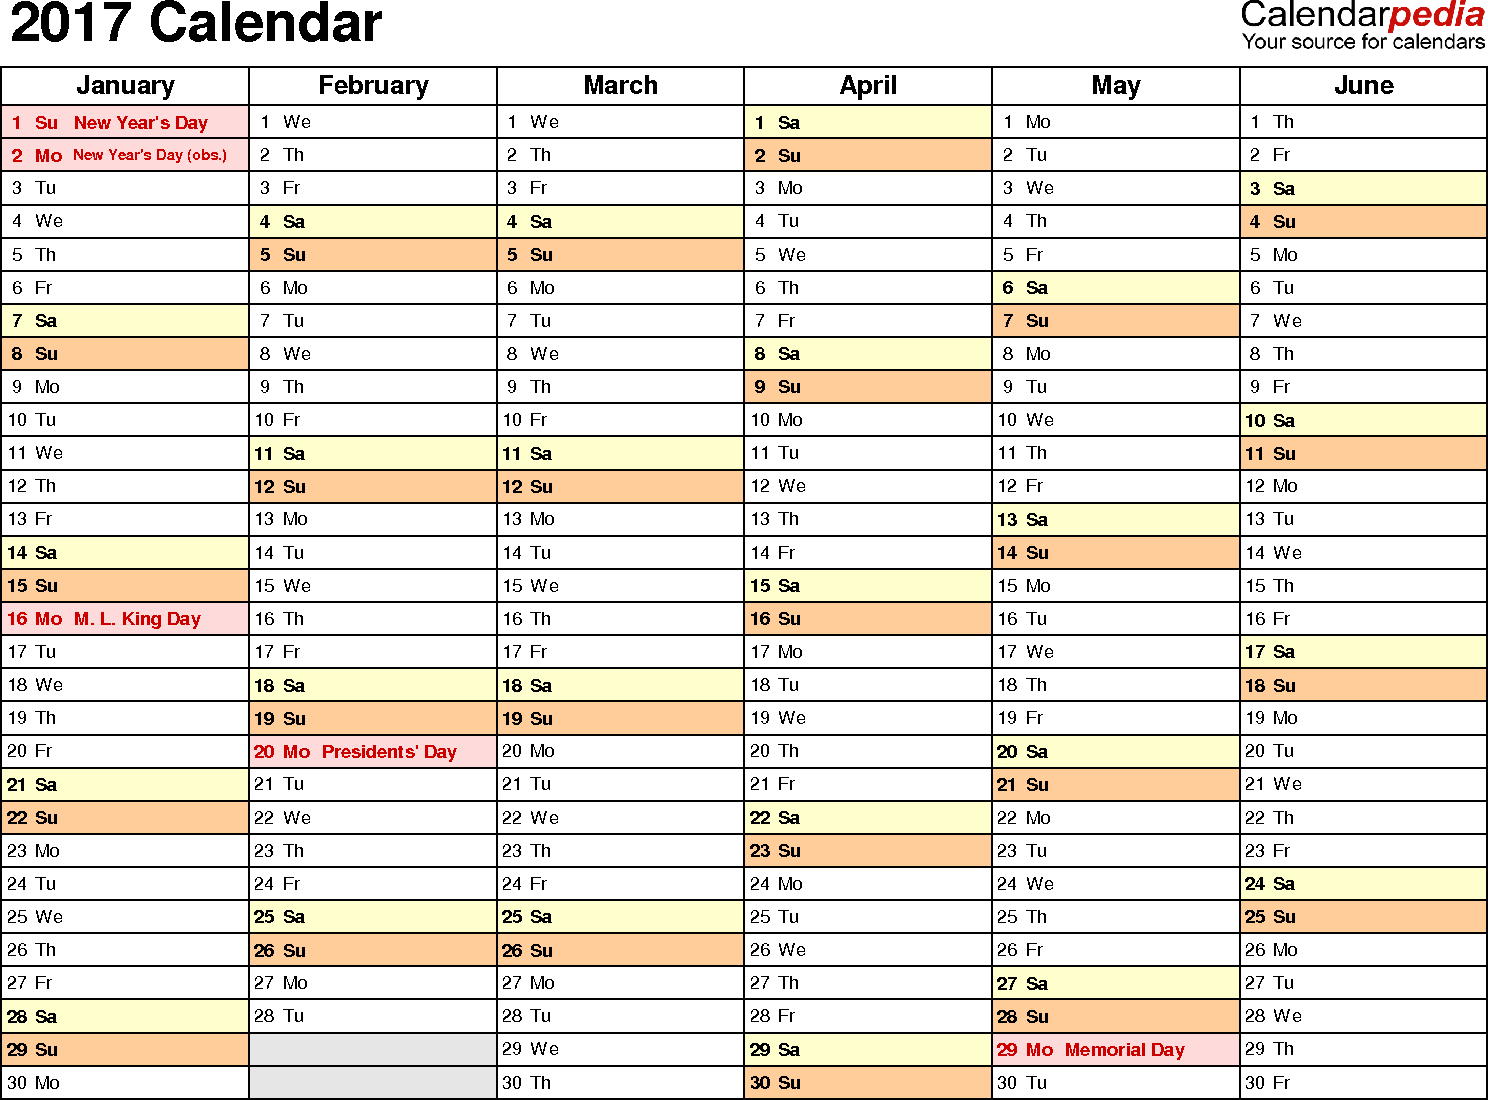 Ediblewildsus  Pretty  Calendar  Download  Free Printable Excel Templates Xls With Interesting Template   Calendar For Excel Months Horizontally  Pages Landscape Orientation With Breathtaking Excel Mid Formula Also Vba Examples In Excel In Addition Excel Compare Function And Total Formula In Excel As Well As Shortcut For Filter In Excel  Additionally Advanced Excel Certification Online From Calendarpediacom With Ediblewildsus  Interesting  Calendar  Download  Free Printable Excel Templates Xls With Breathtaking Template   Calendar For Excel Months Horizontally  Pages Landscape Orientation And Pretty Excel Mid Formula Also Vba Examples In Excel In Addition Excel Compare Function From Calendarpediacom